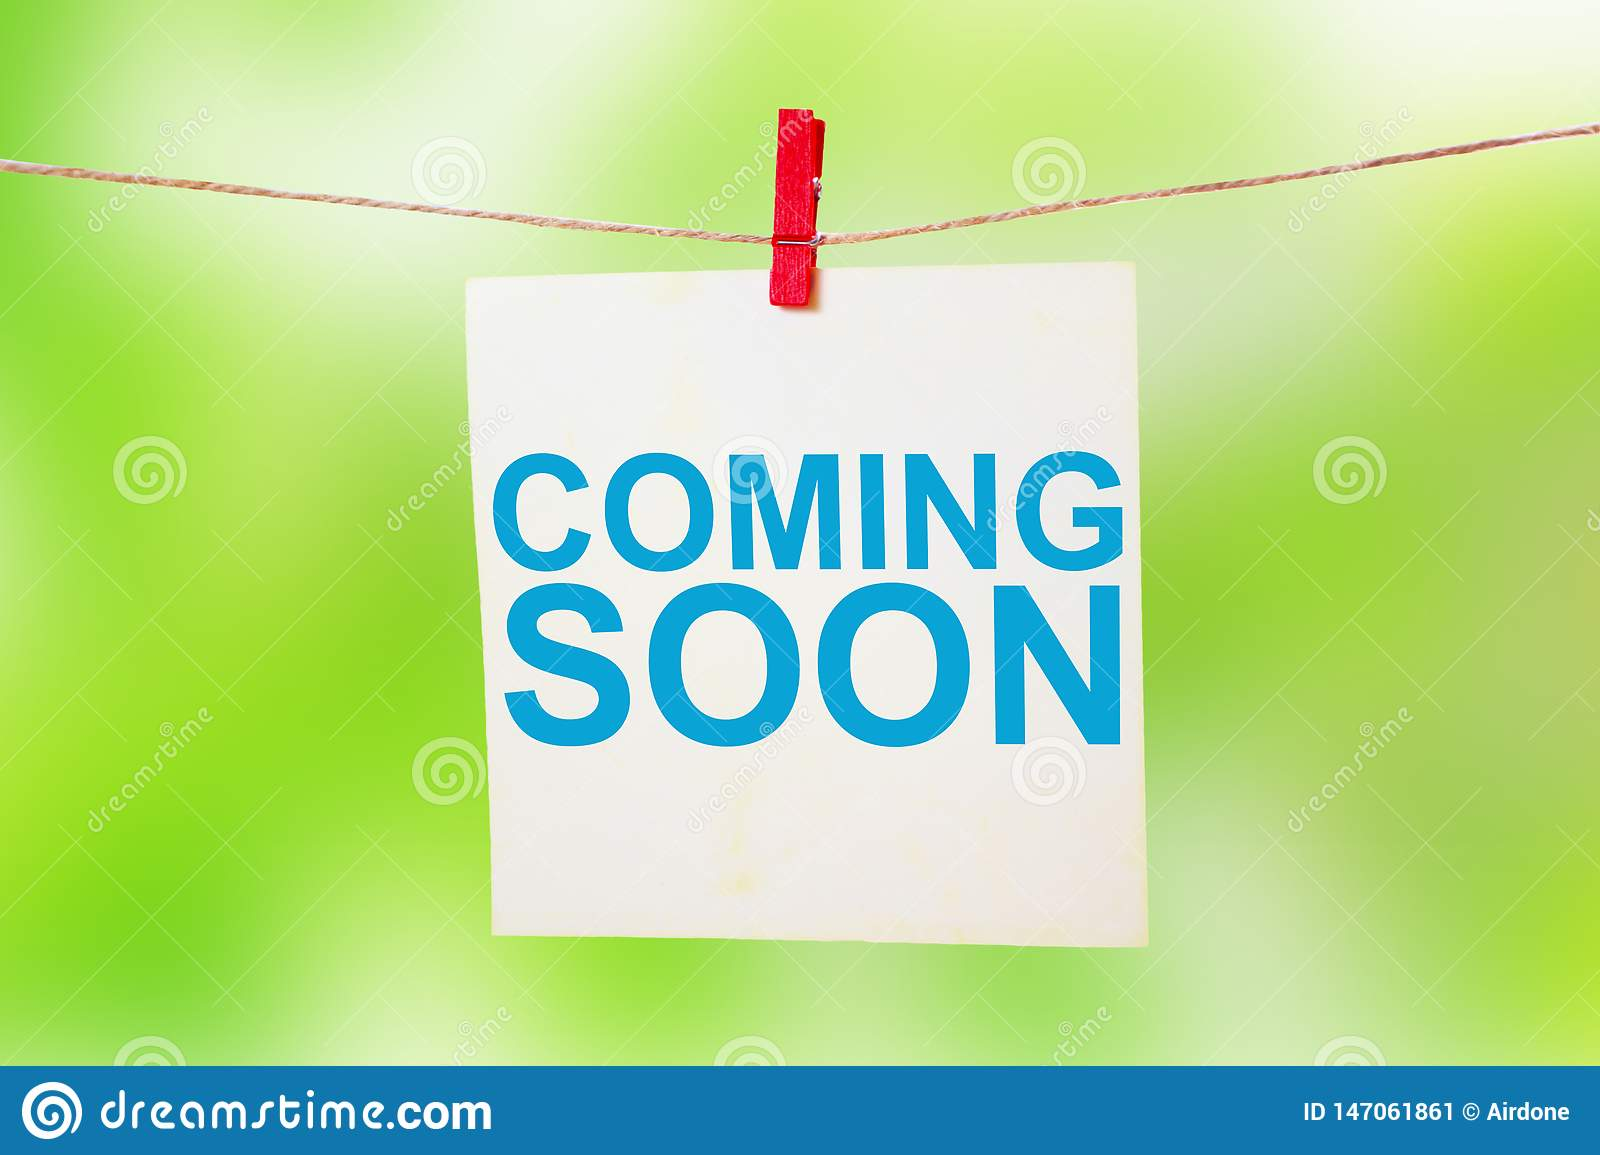 Coming Soon Words Typography Concept Stock Image Image Of Information Commerce 147061861